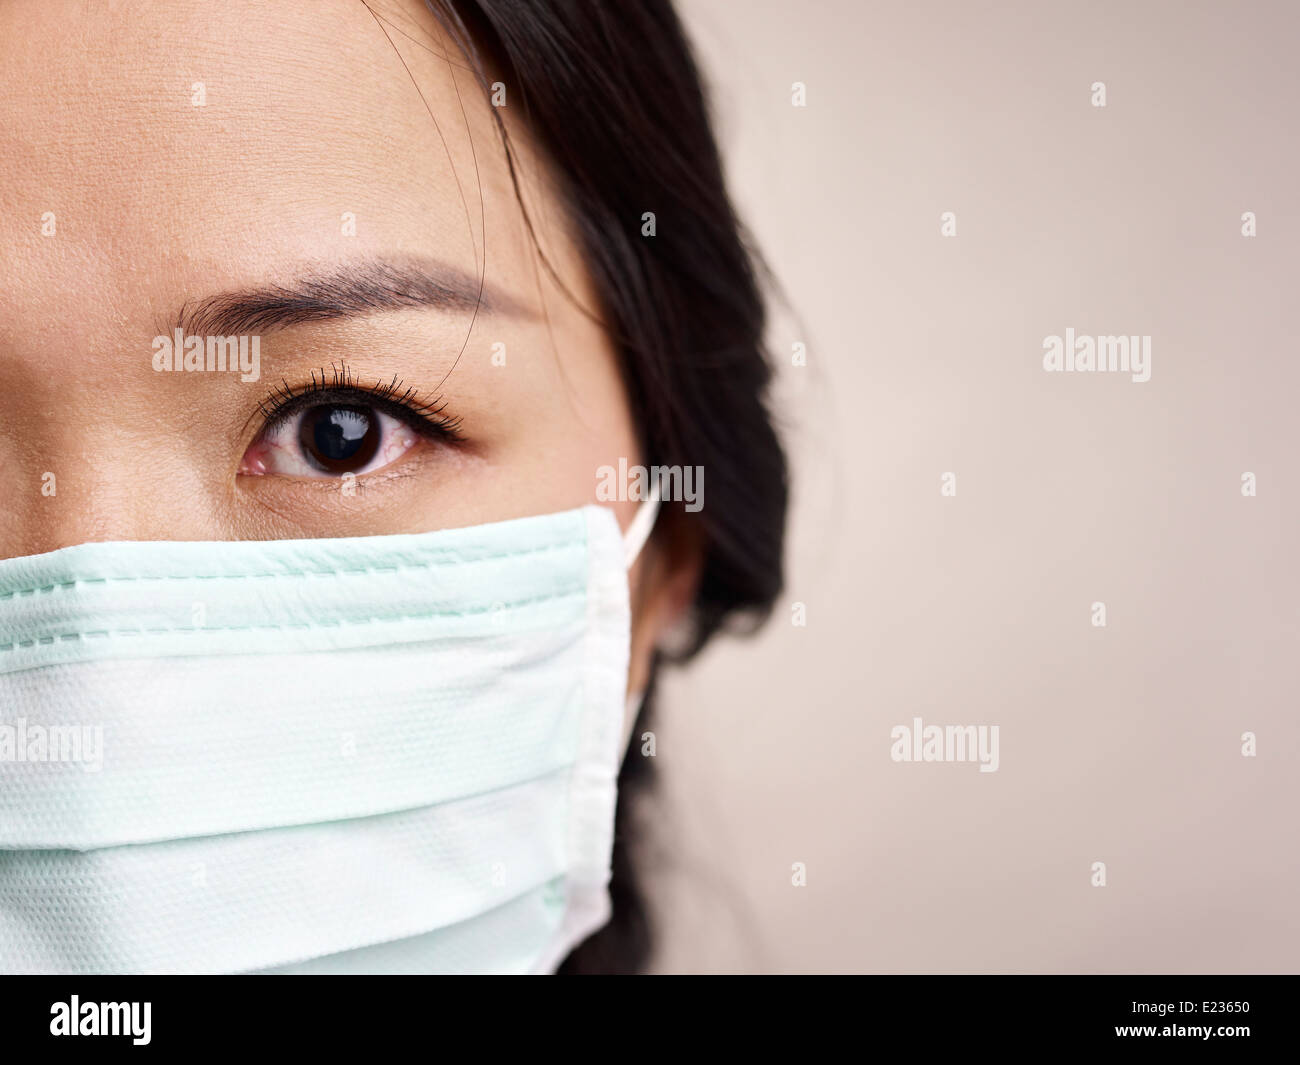 face with mask - Stock Image